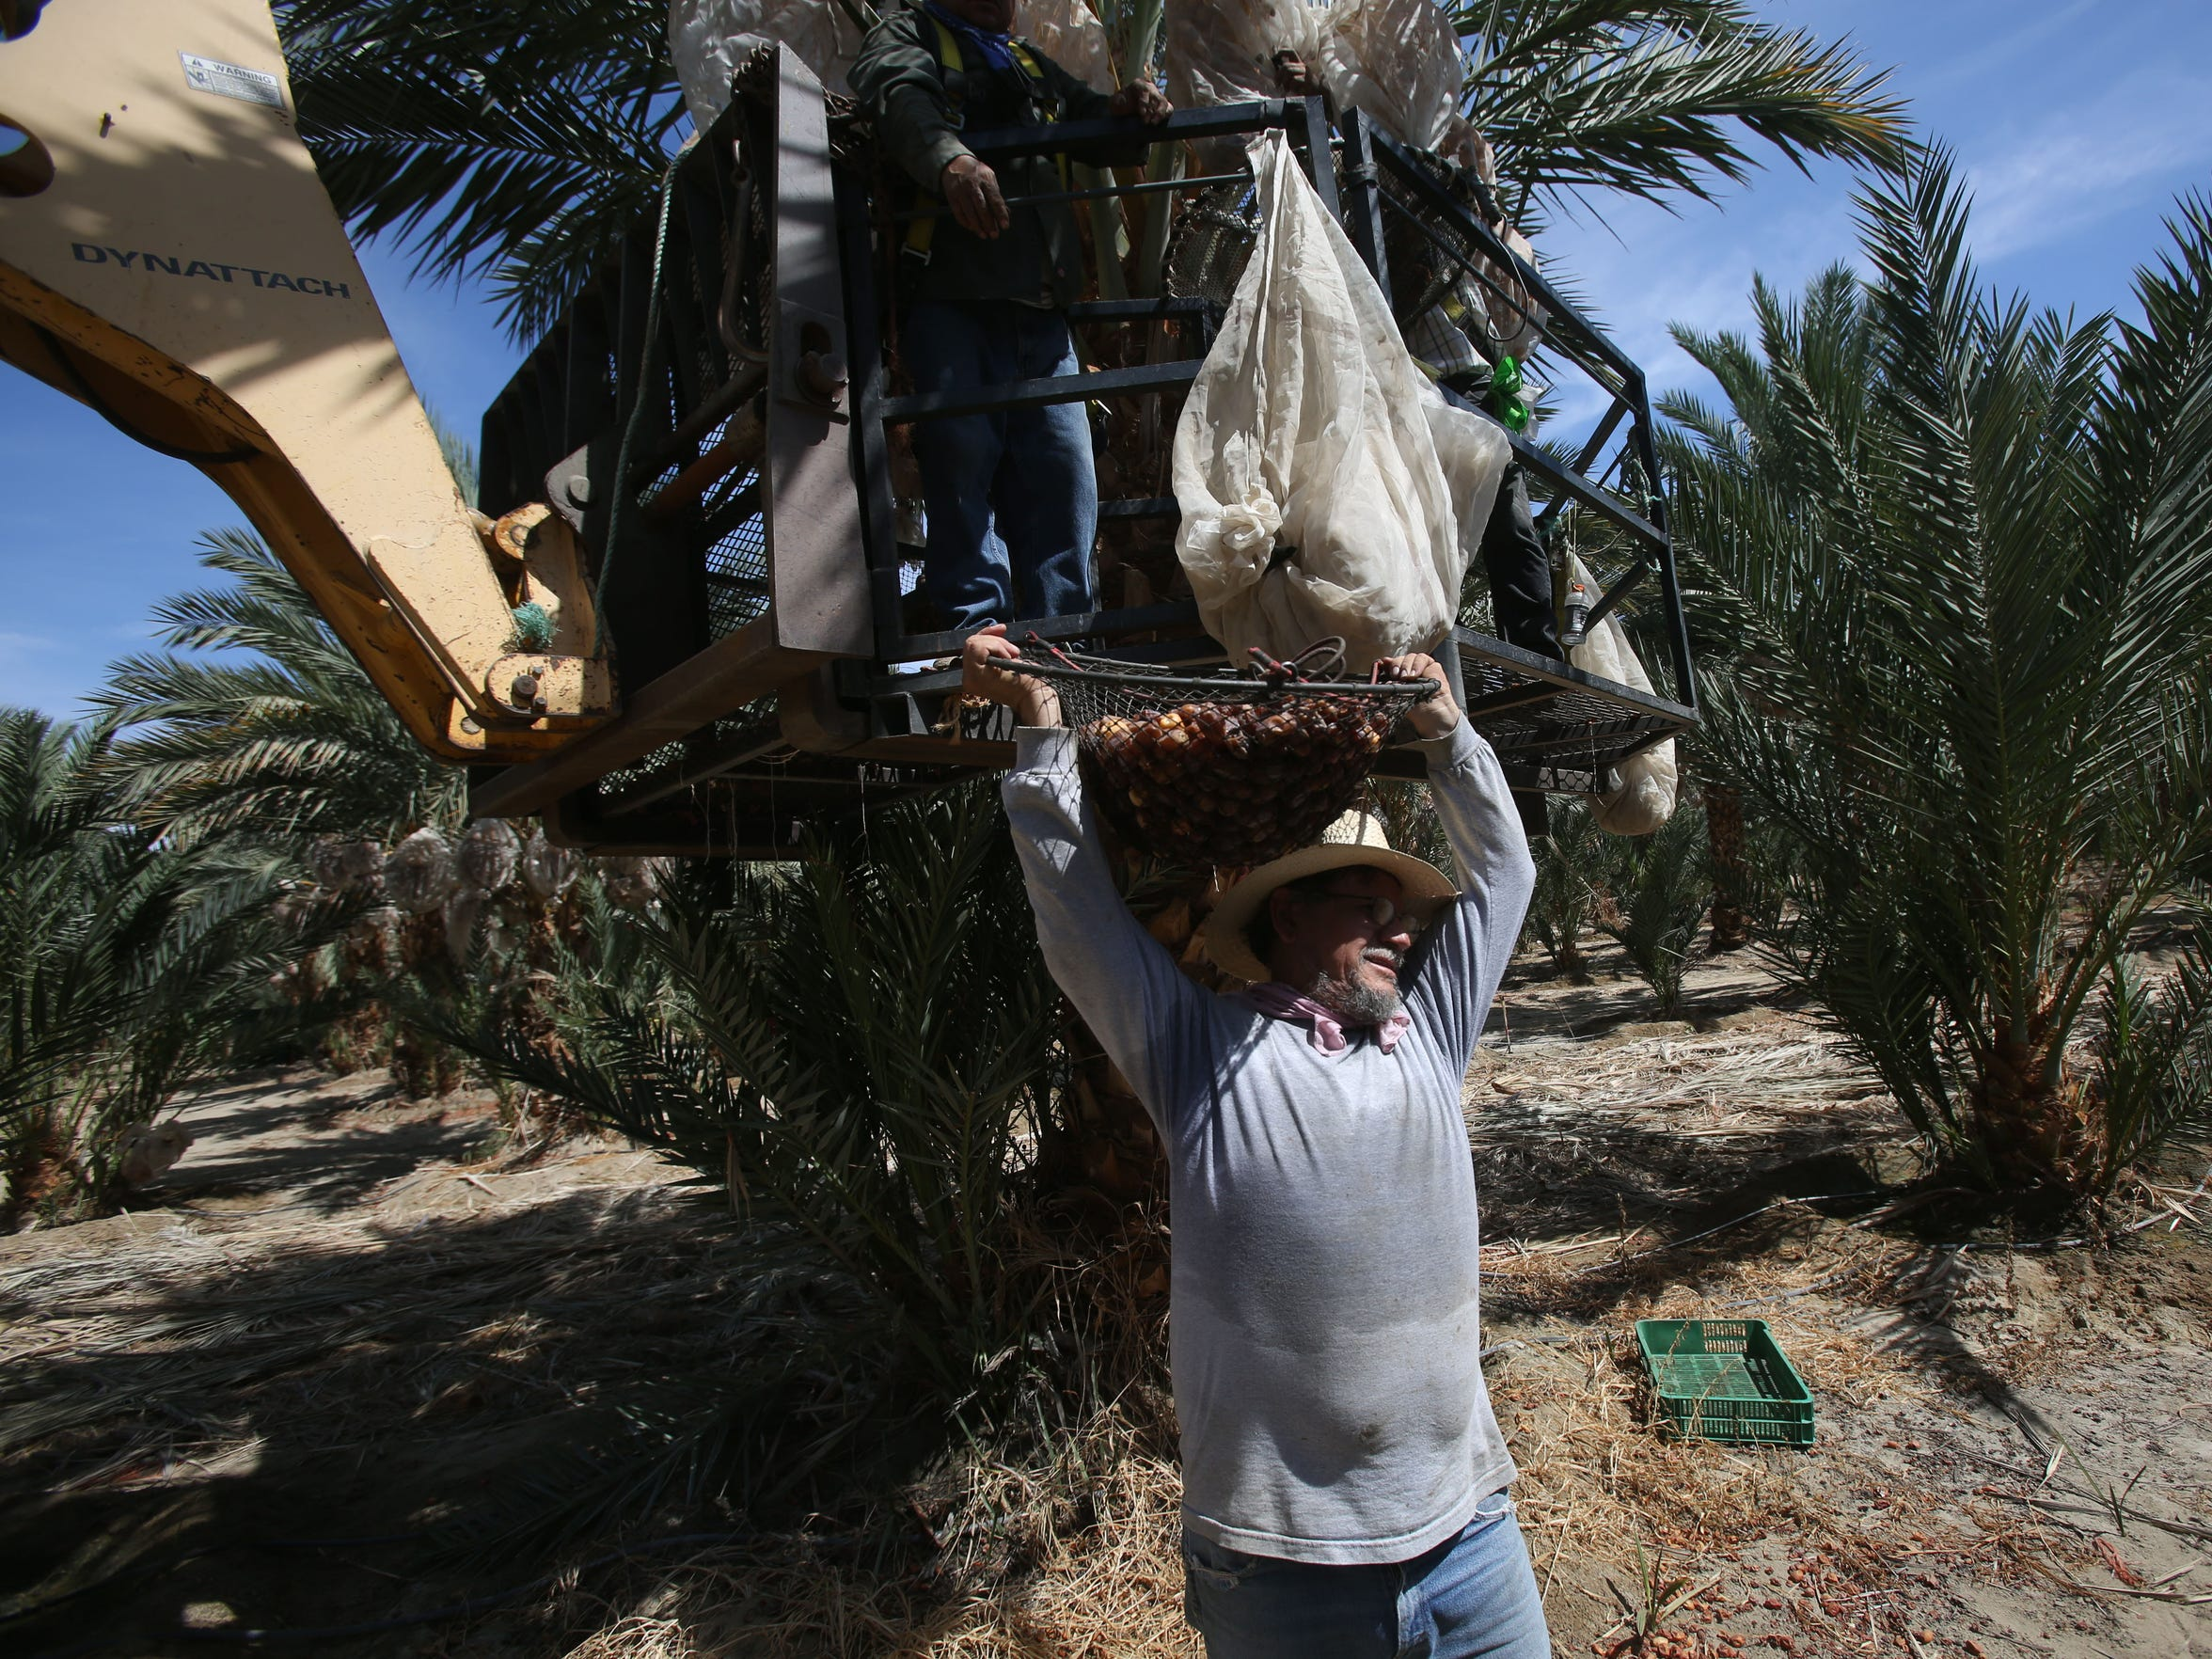 Dates are harvested by farmers in 90 degree weather near Mecca, California. Despite the heat, farmers wear full sleeve clothing to prevent losing fluids through perspiration.